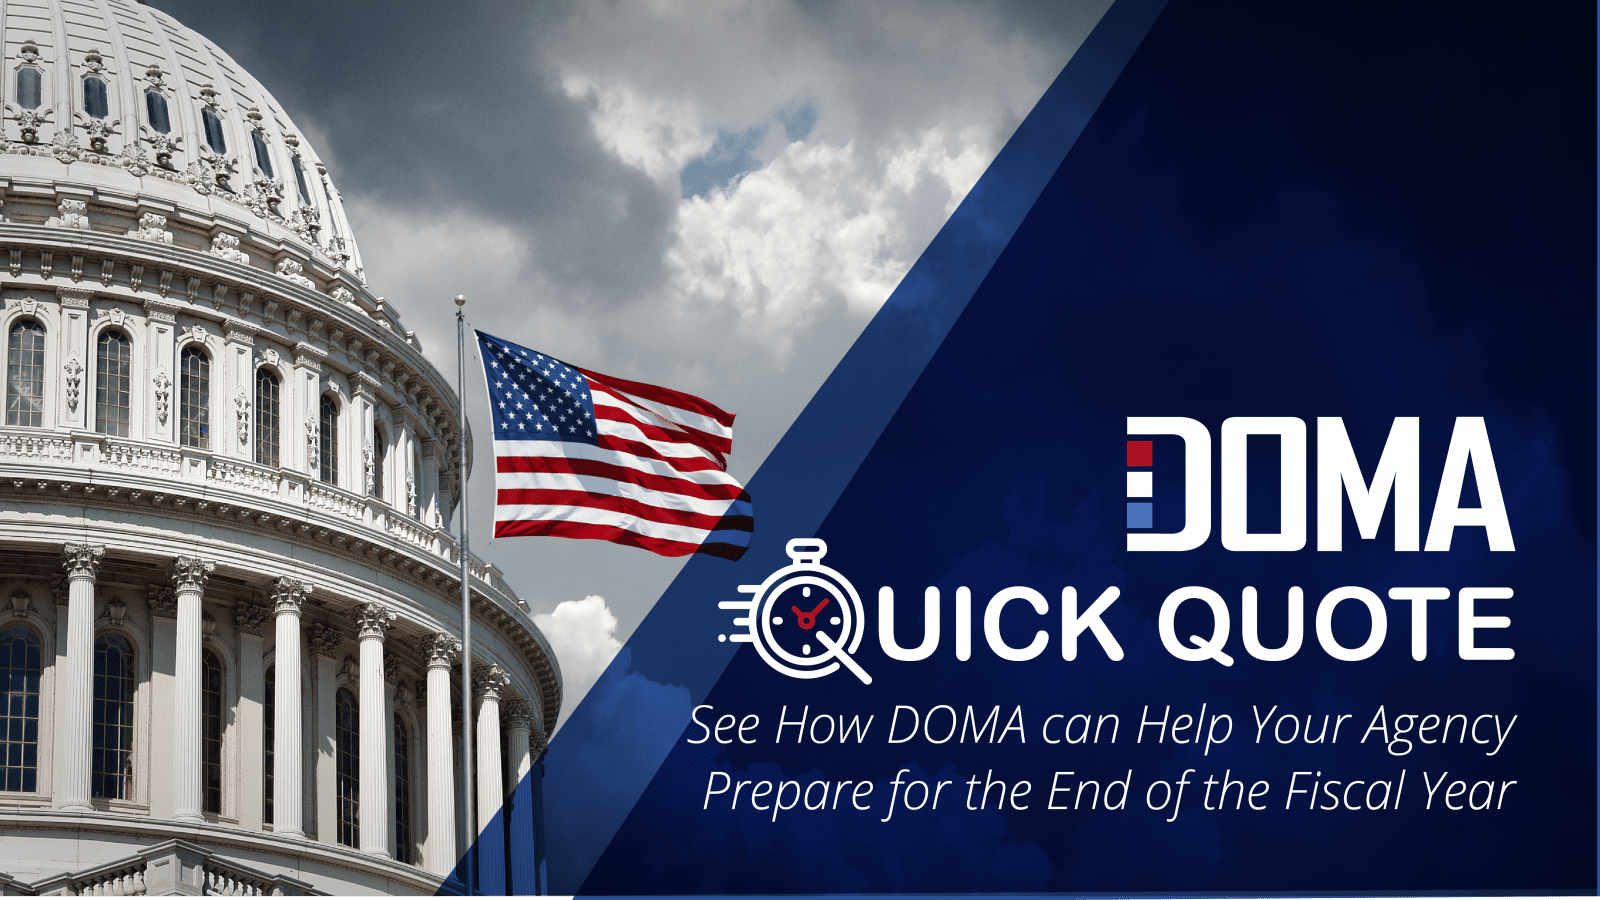 DOMA Quick Quote Program